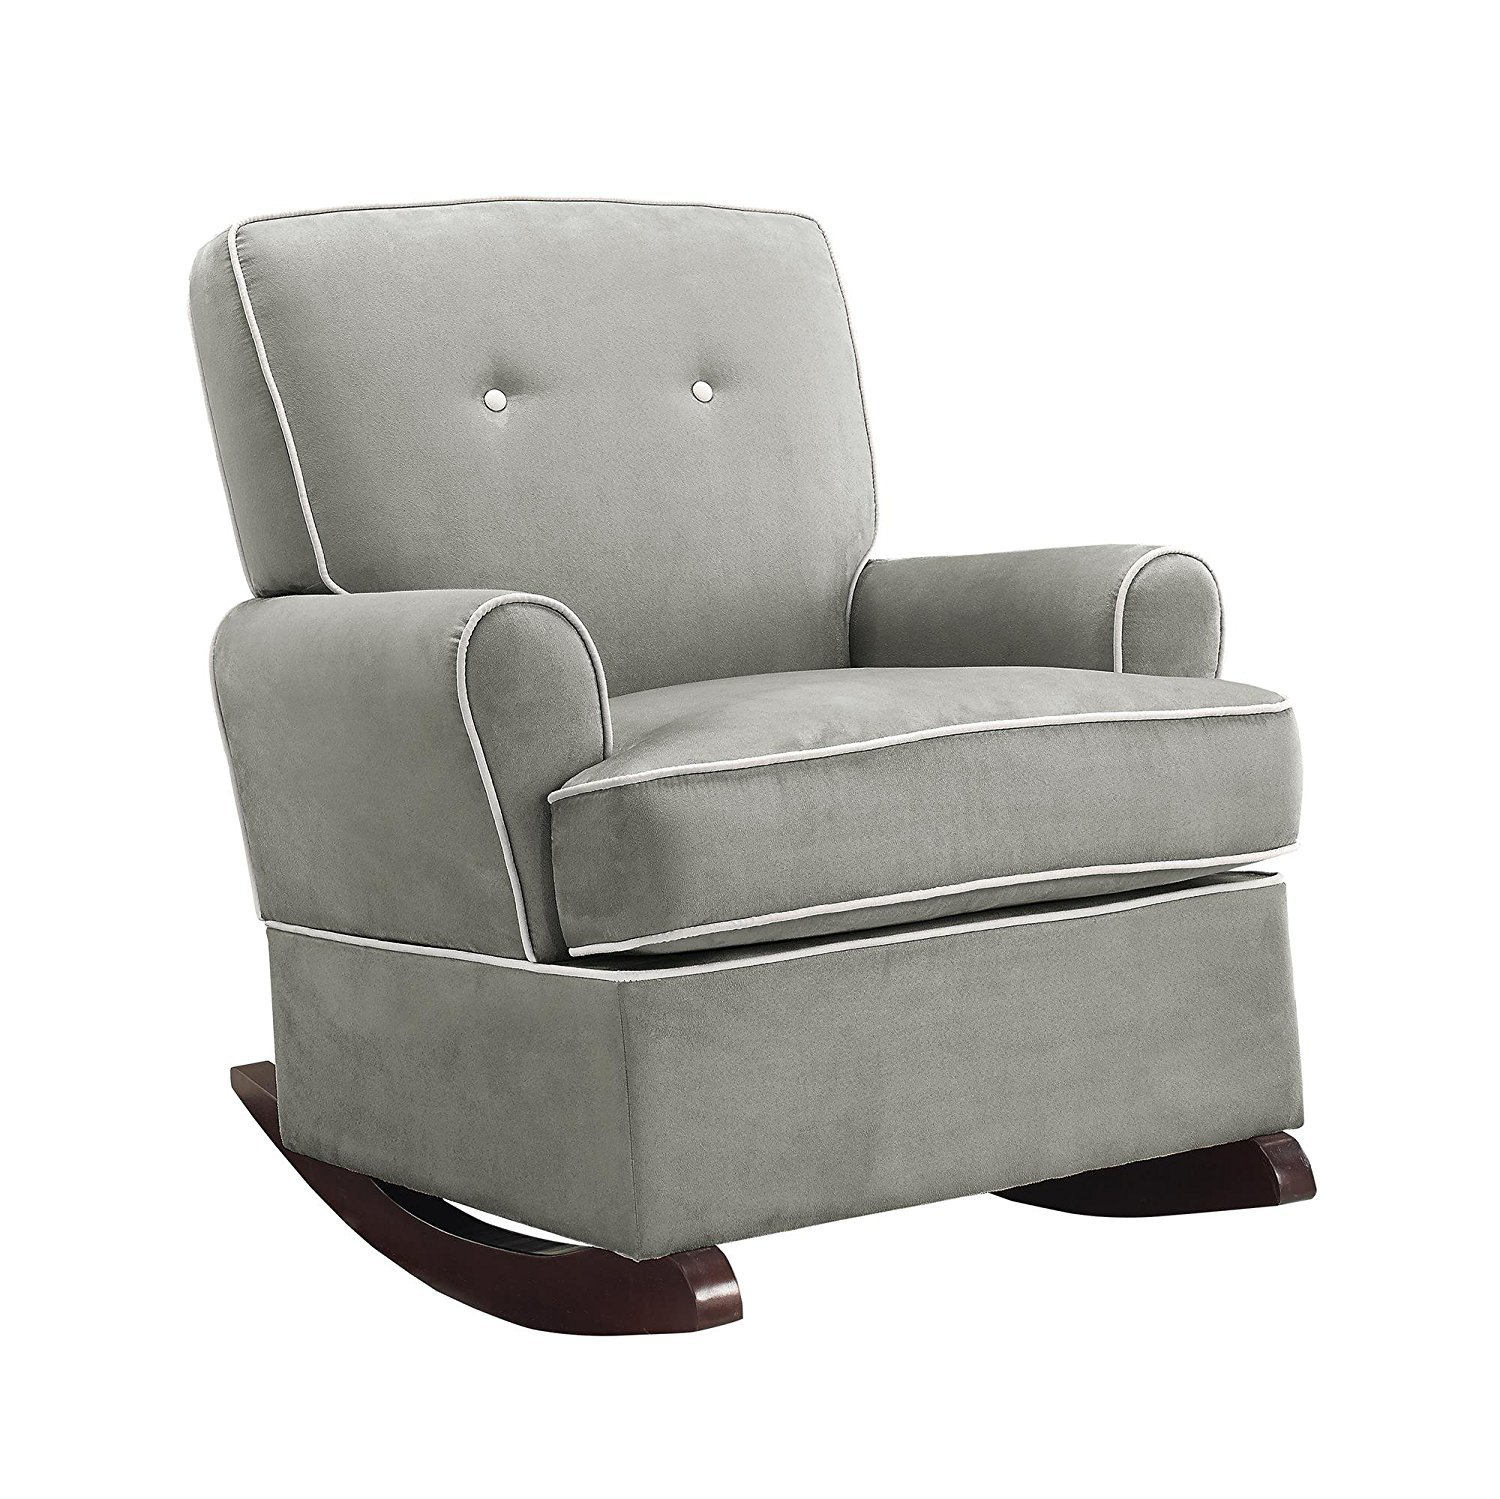 Baby Relax The Tinsley Glider Chair